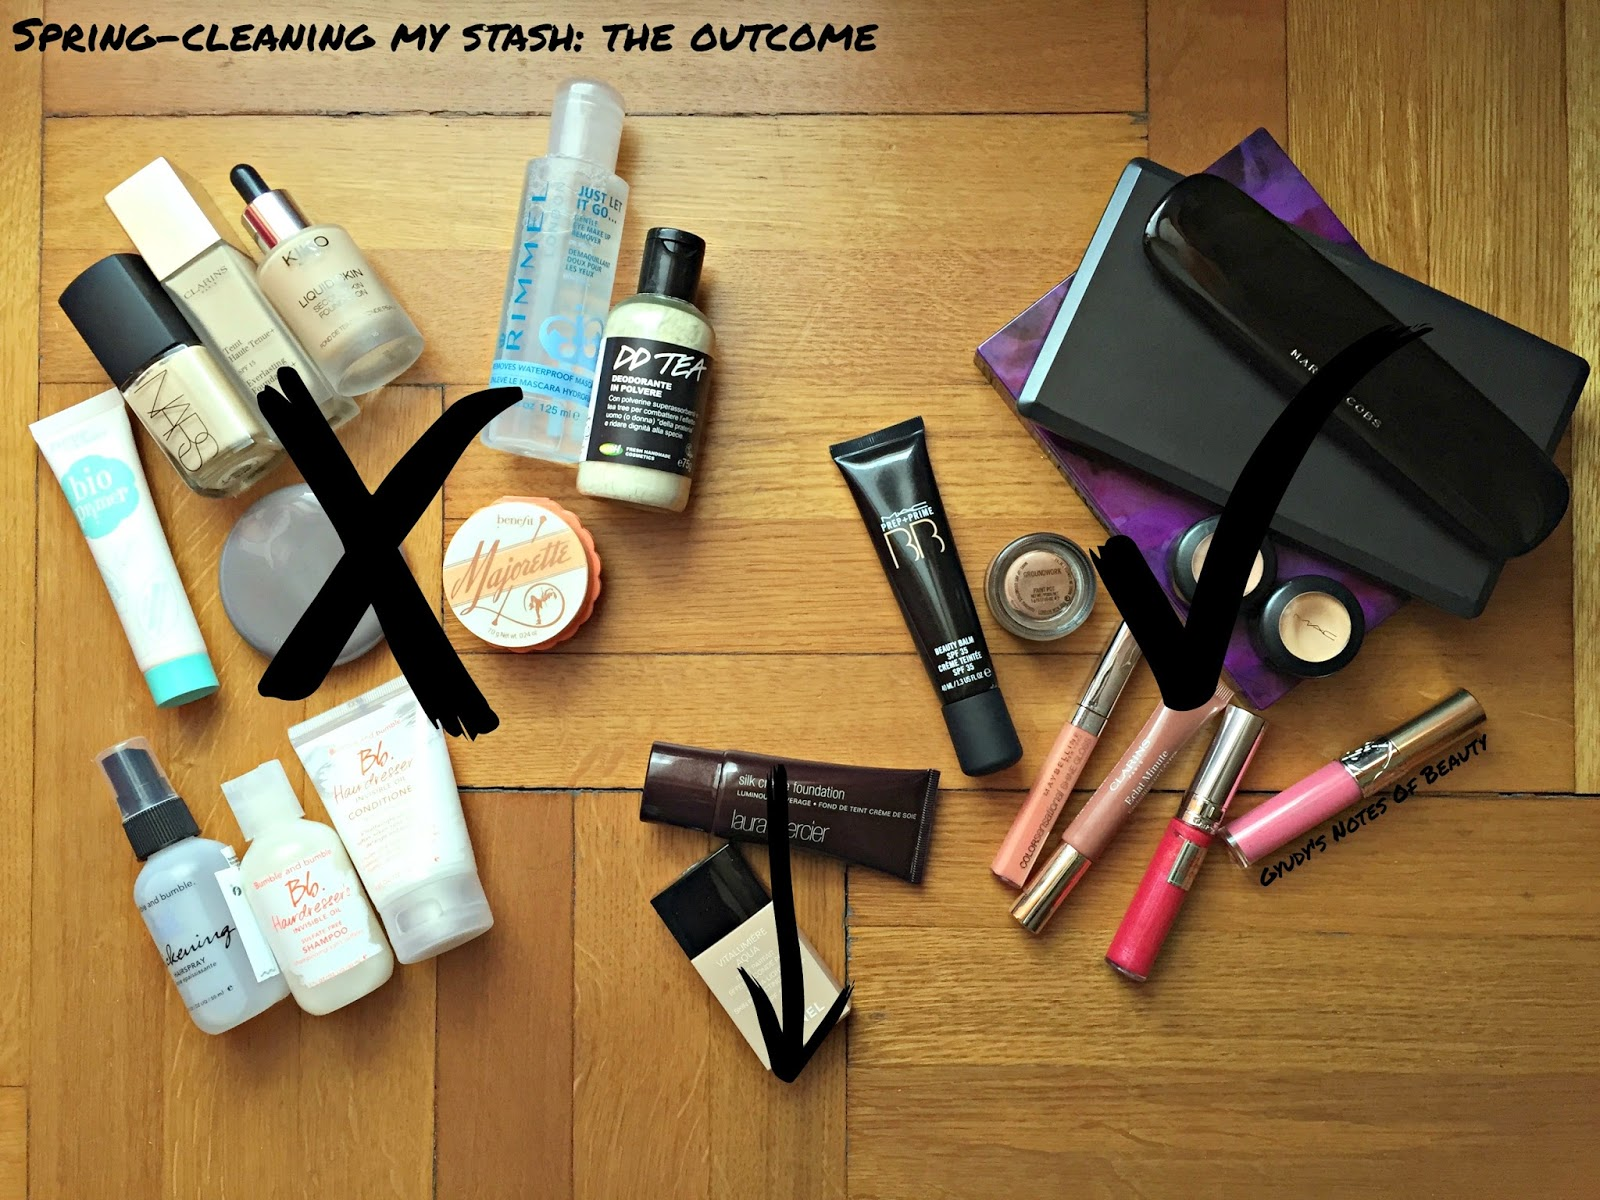 Spring-cleaning, Beauty, Makeup, Haircare, Downsizing